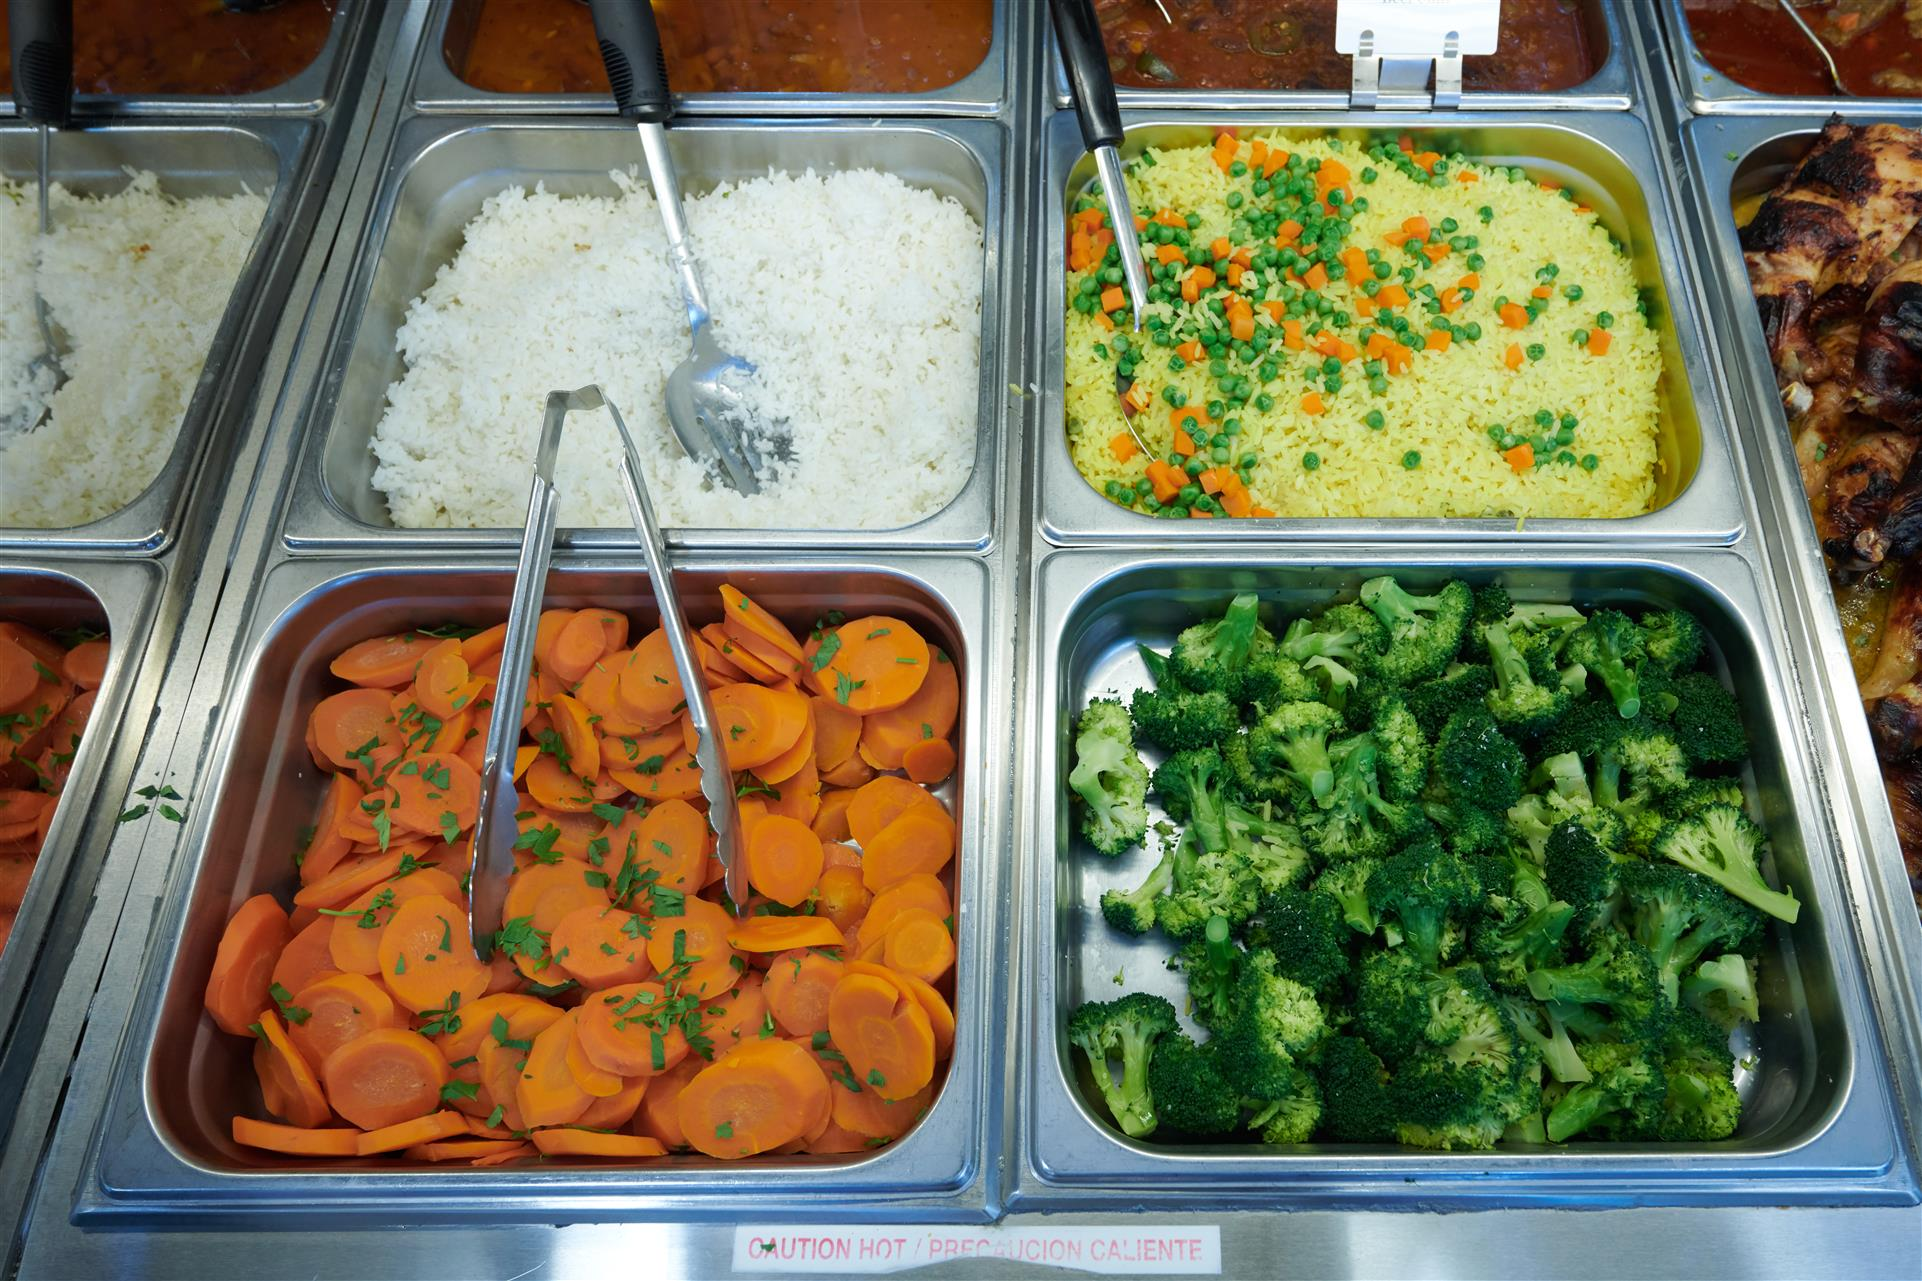 assortment of vegetables in trays